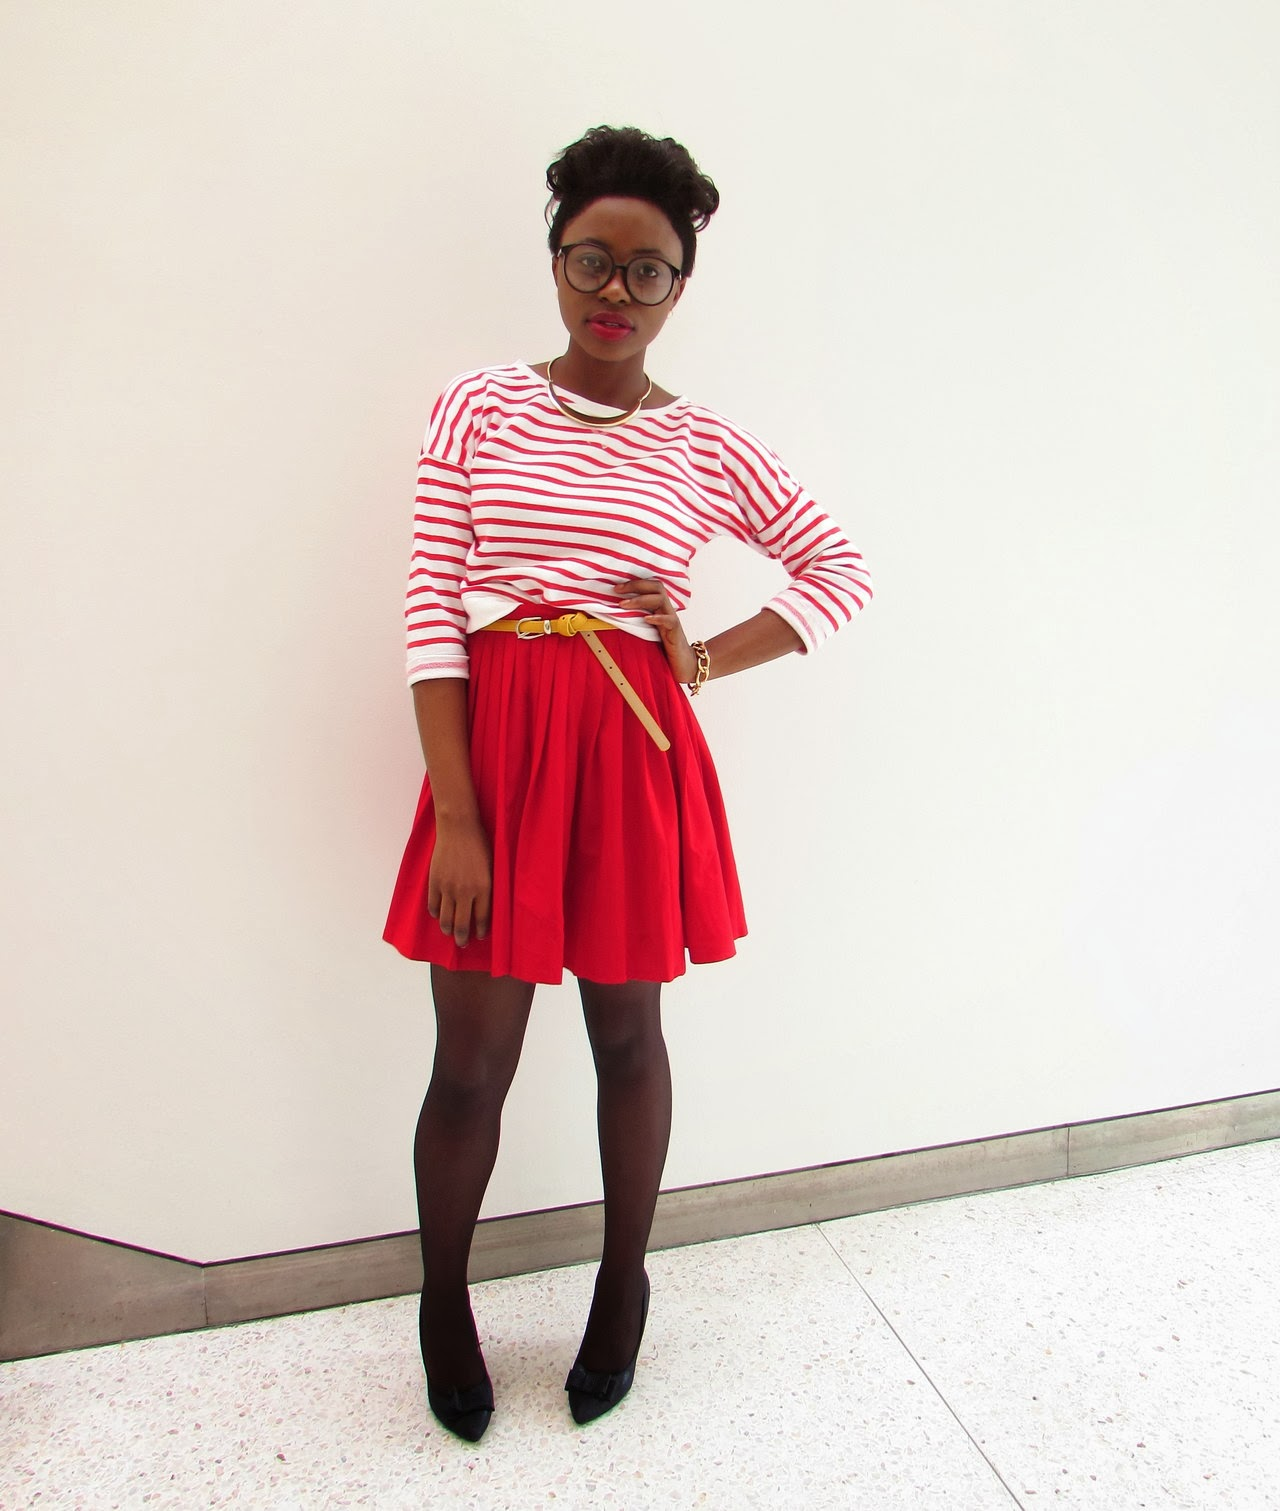 Black Girls Killing It Be: All About Fashion: Ideas For Crop Top/Skirt